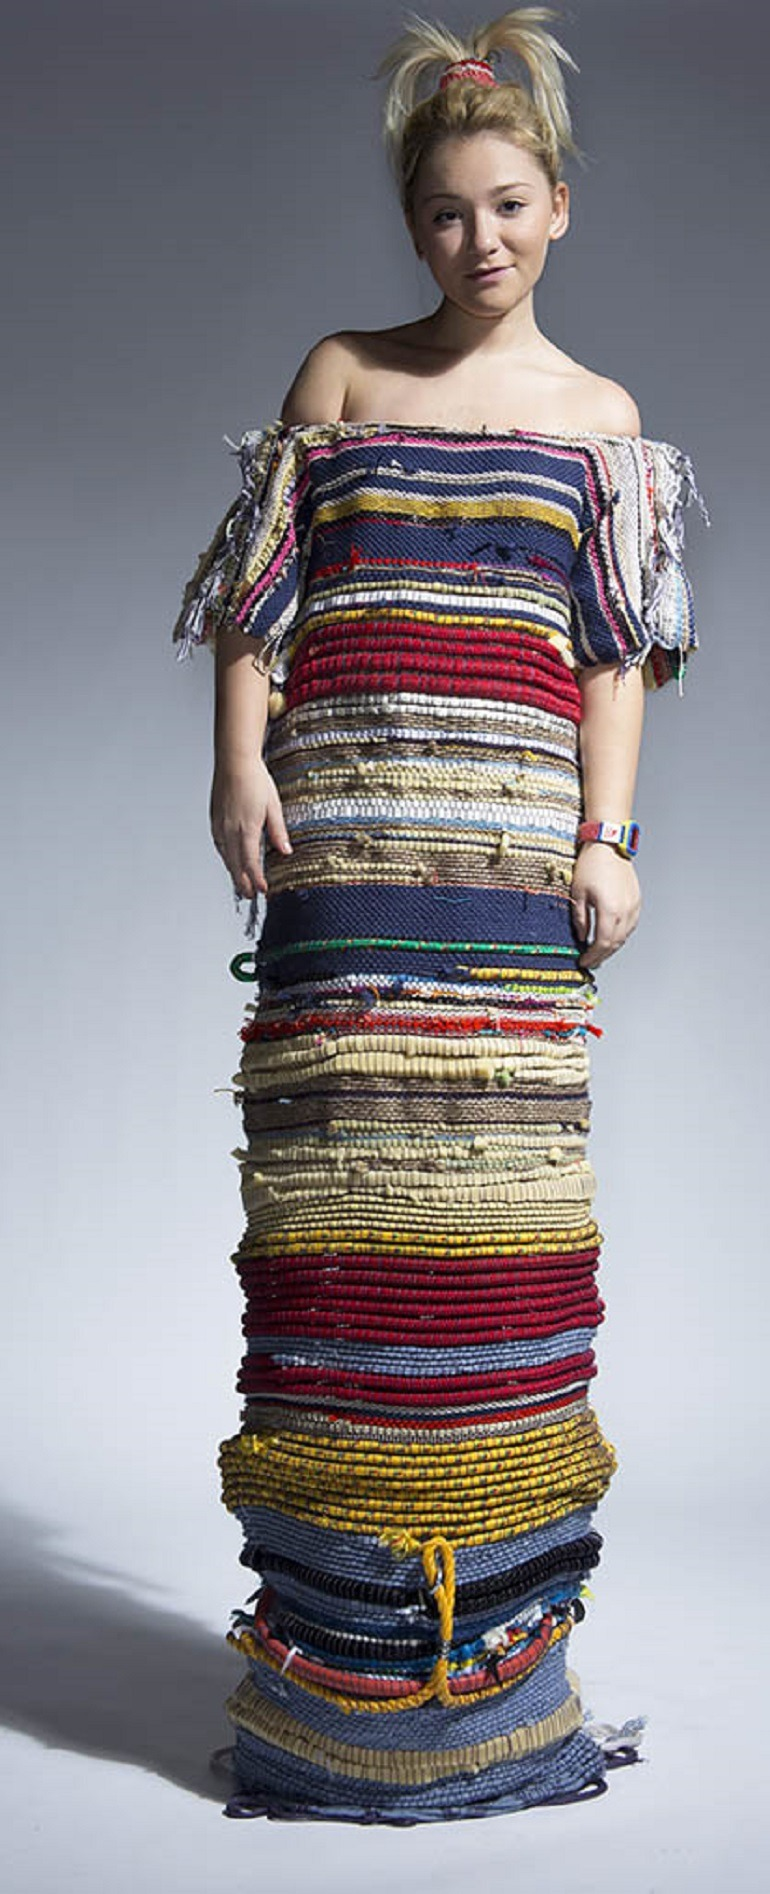 Image: Hannah Jeremiah's Sacs shows how MICA's young artists and designers are extending fashion boundaries